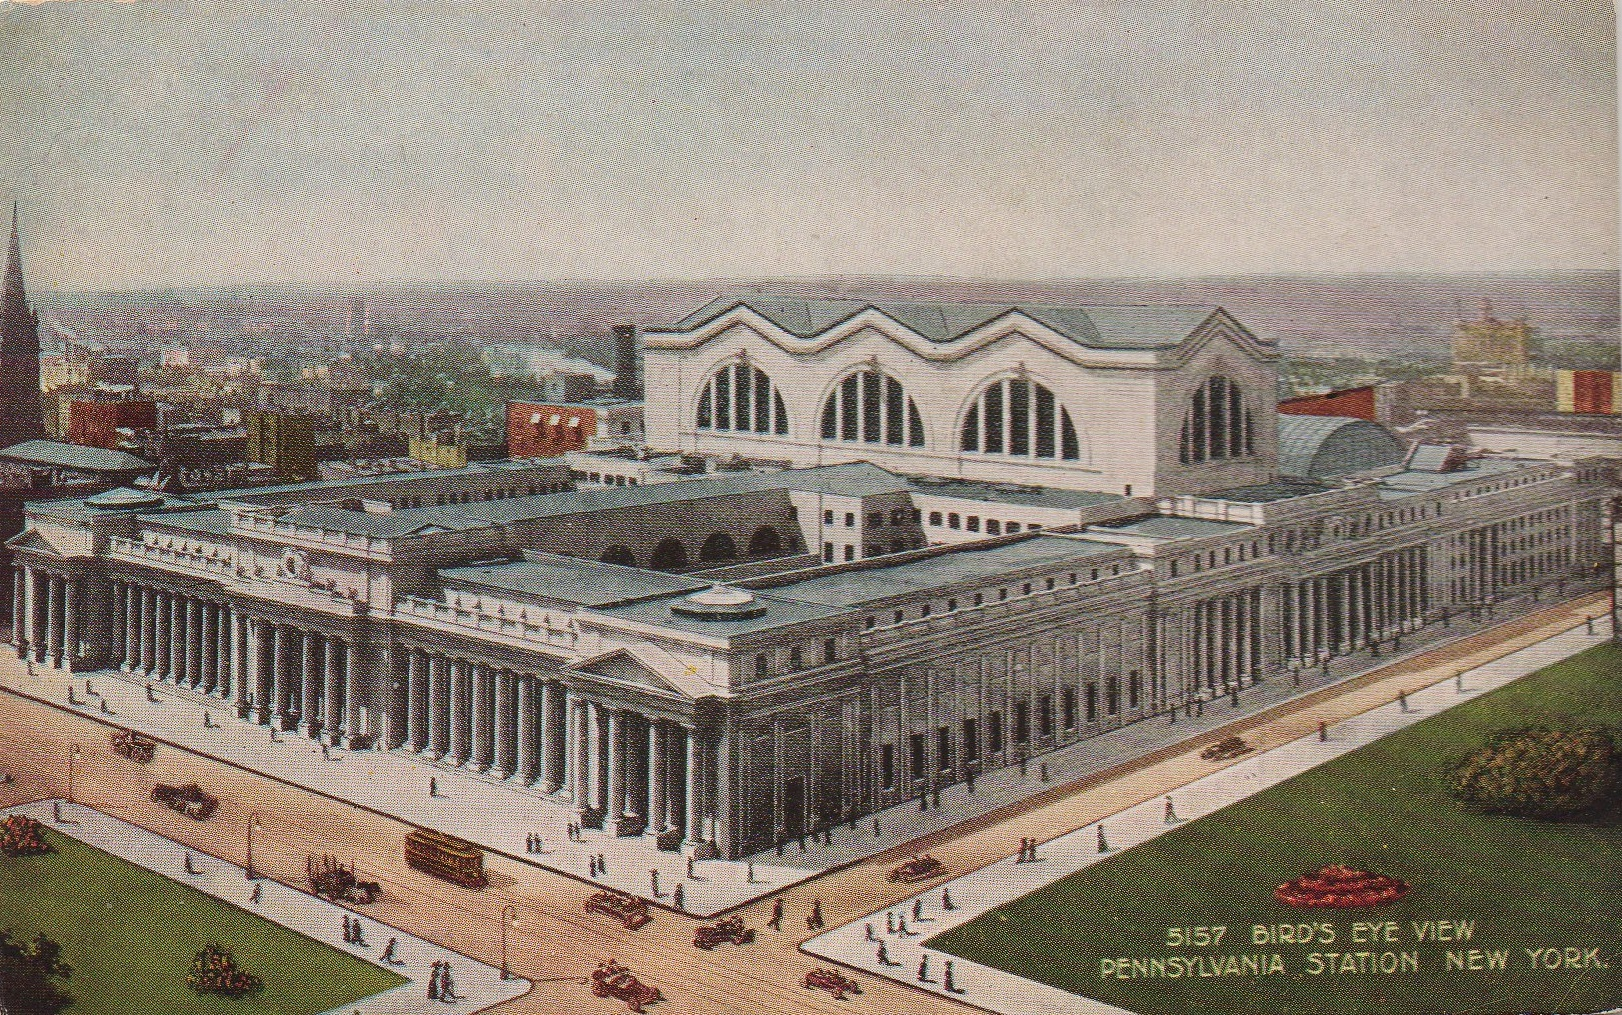 New York's old Pennsylvania Station before it was torn down in 1963.